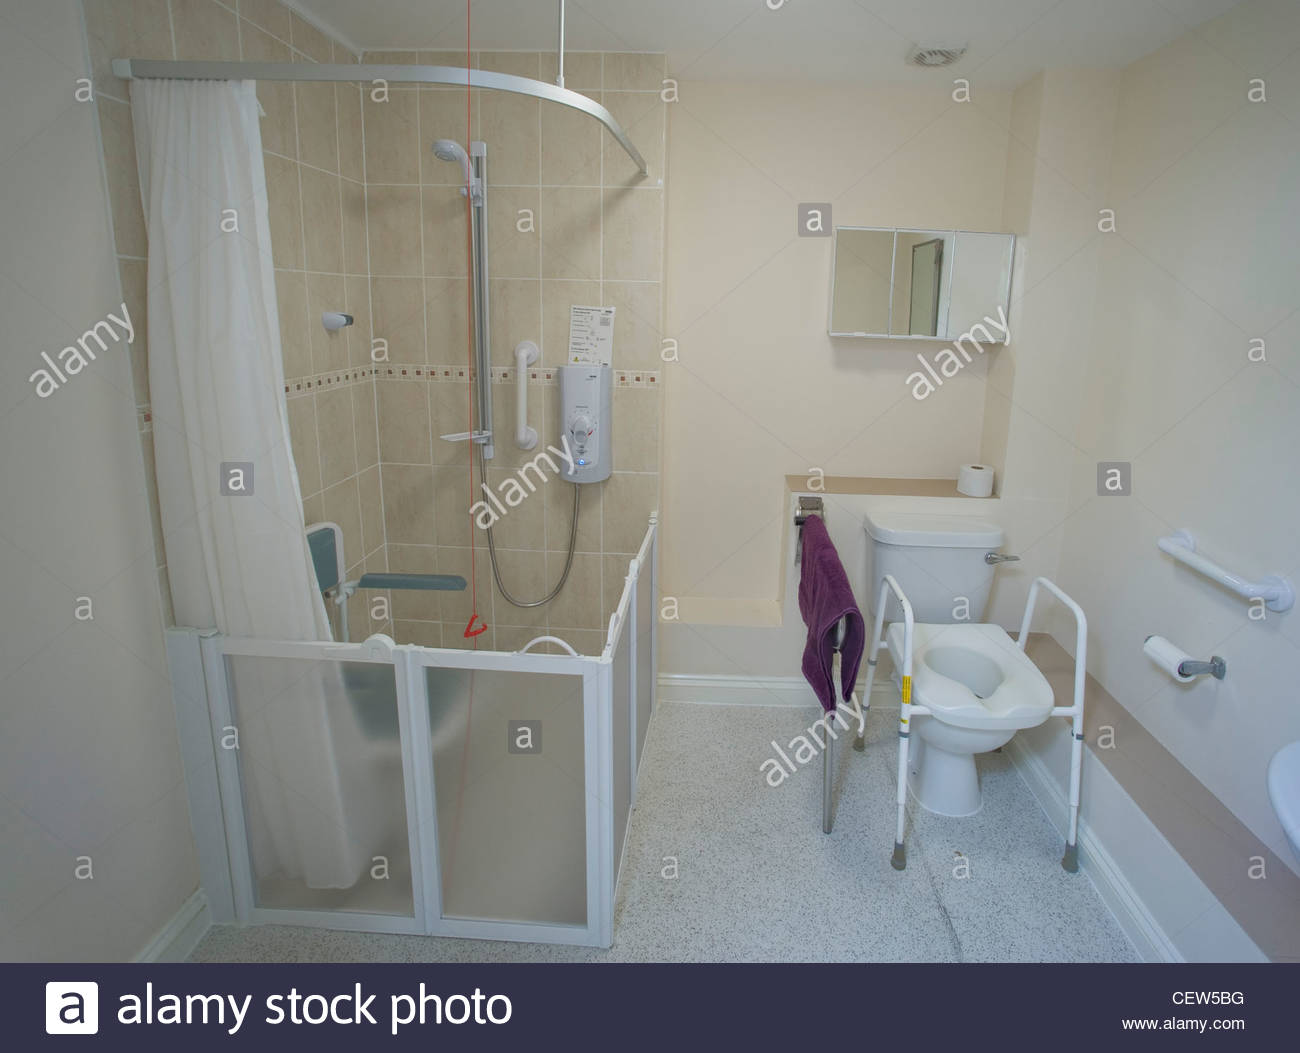 A special adapted shower room for disabled people stock - Disabled shower room ...